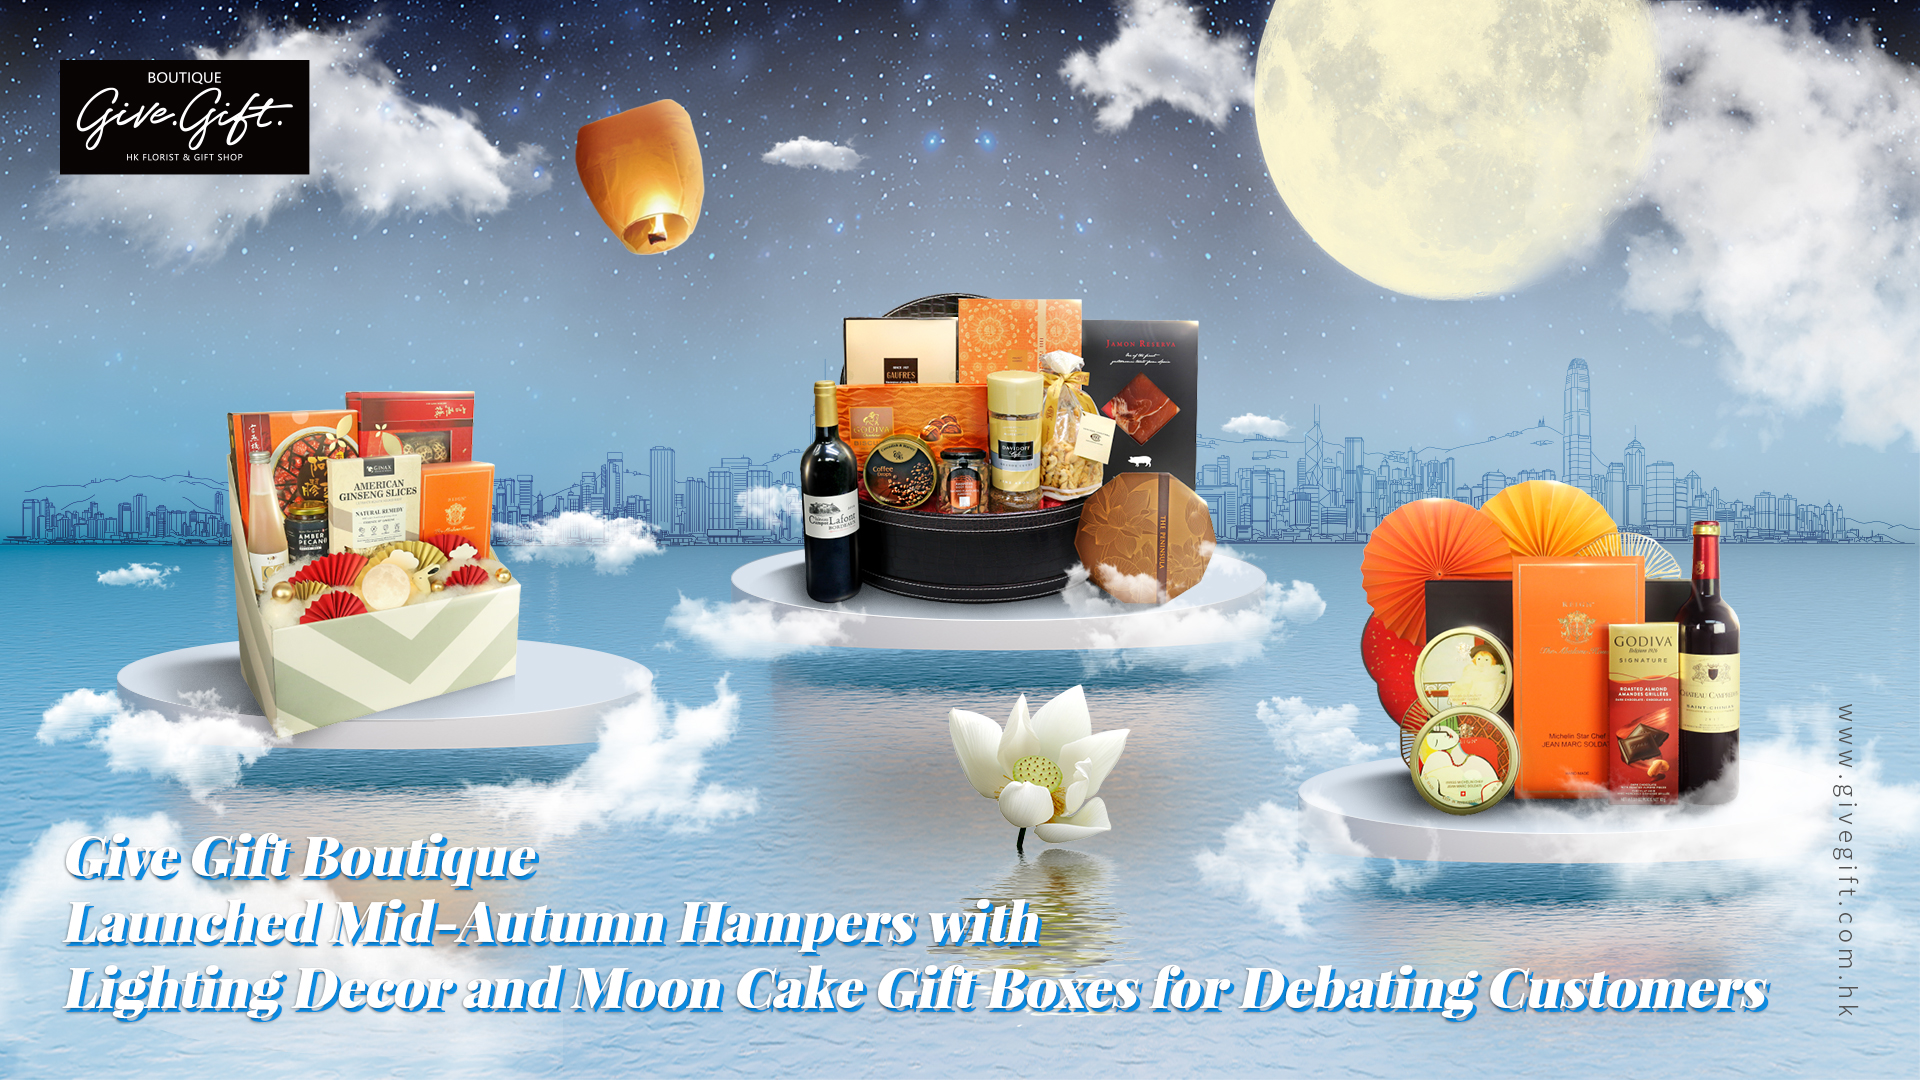 Give Gift Boutique Launched Mid-Autumn Hampers with Lighting Decor and Moon Cake Gift Boxes for Debating Customers